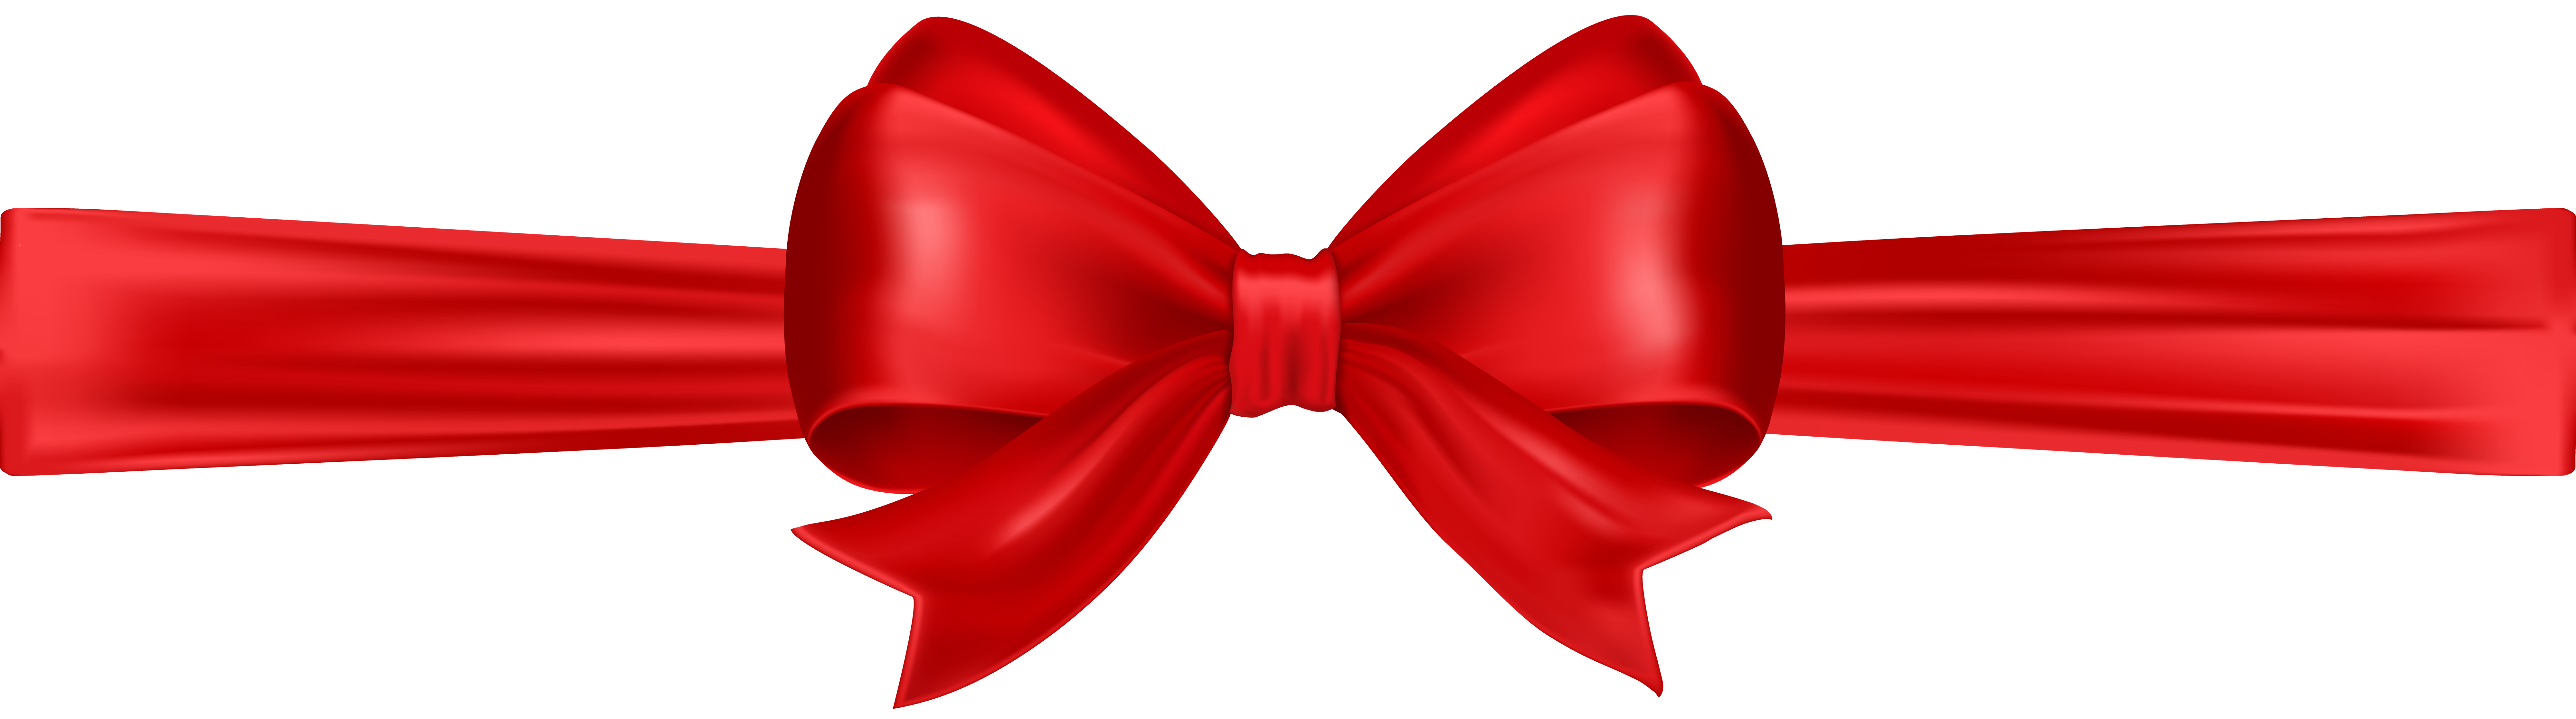 Bow clip art png. Bows clipart red